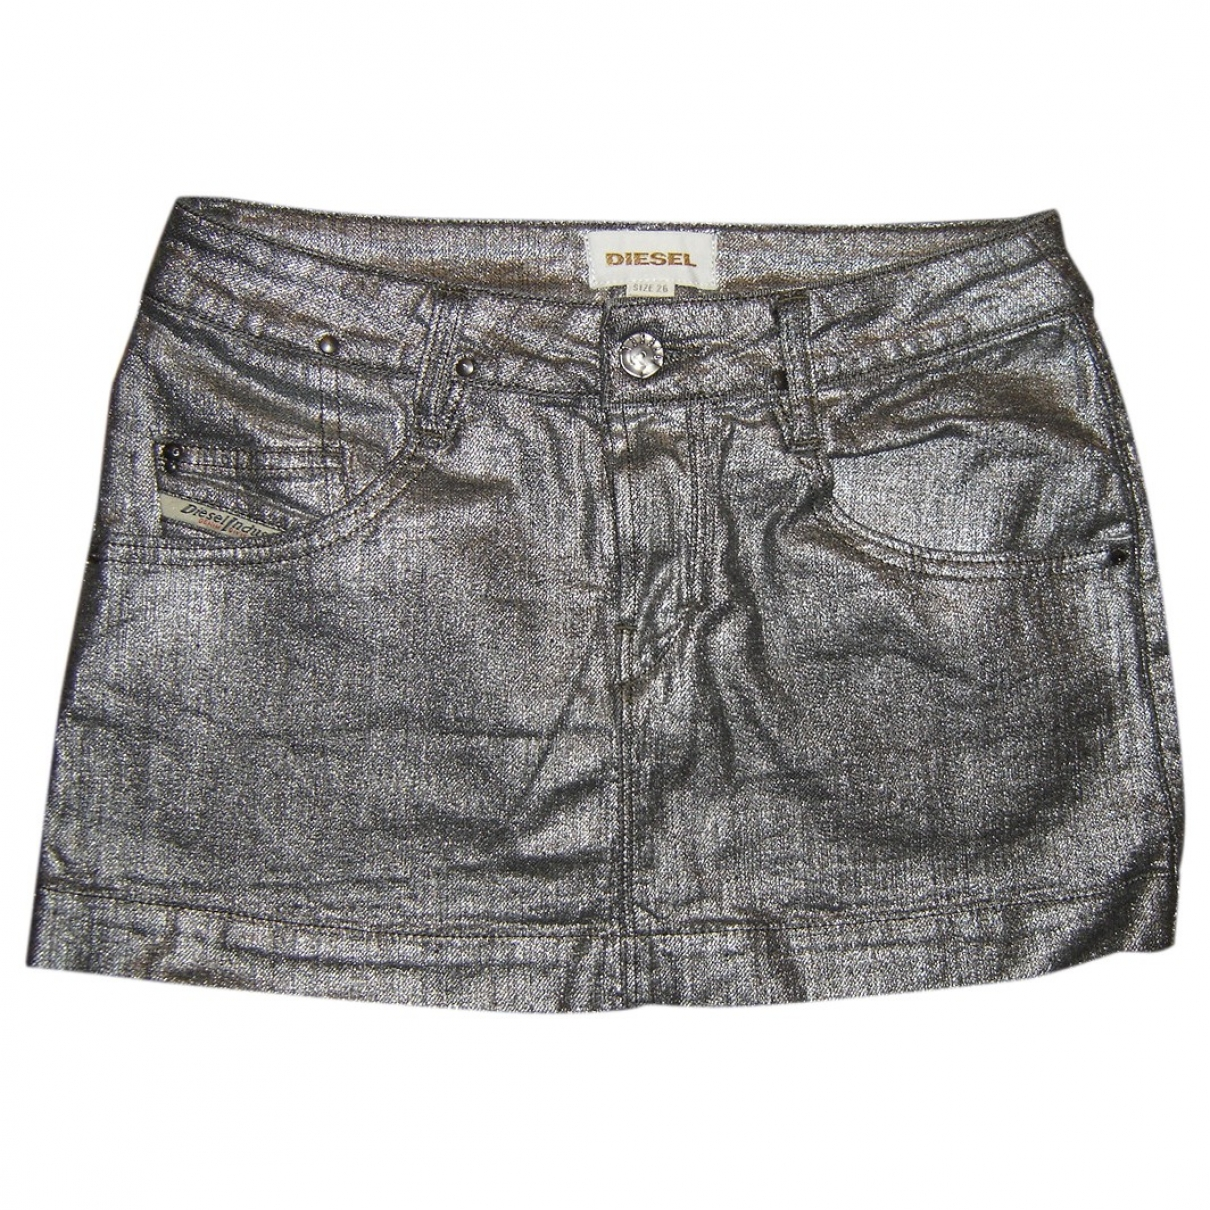 Diesel \N Silver Cotton skirt for Women XS International